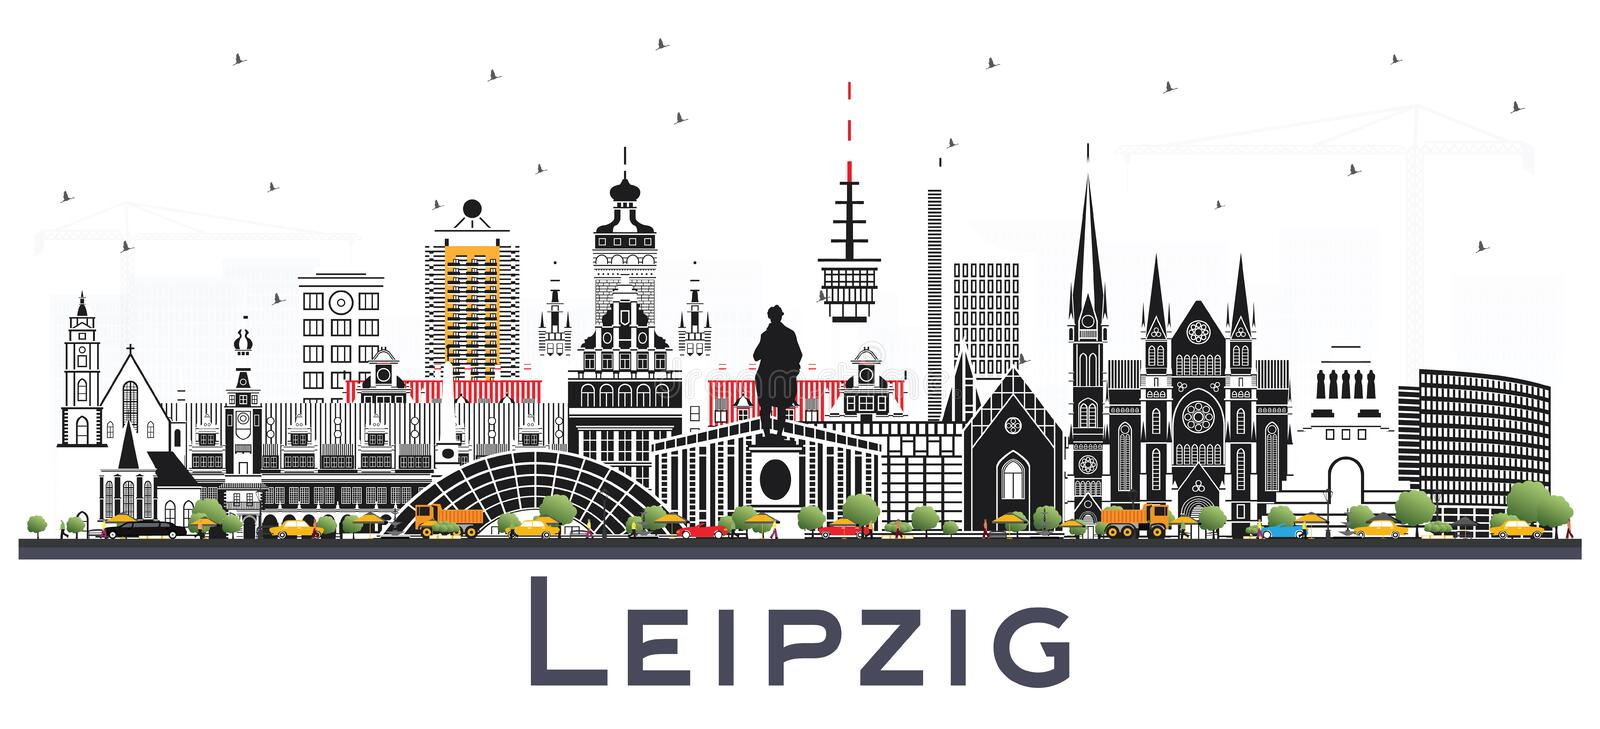 Das RasenBallsport Leipzig Journal Leipzig-germany-city-skyline-gray-buildings-isolated-whi-white-vector-illustration-business-travel-tourism-concept-129294421